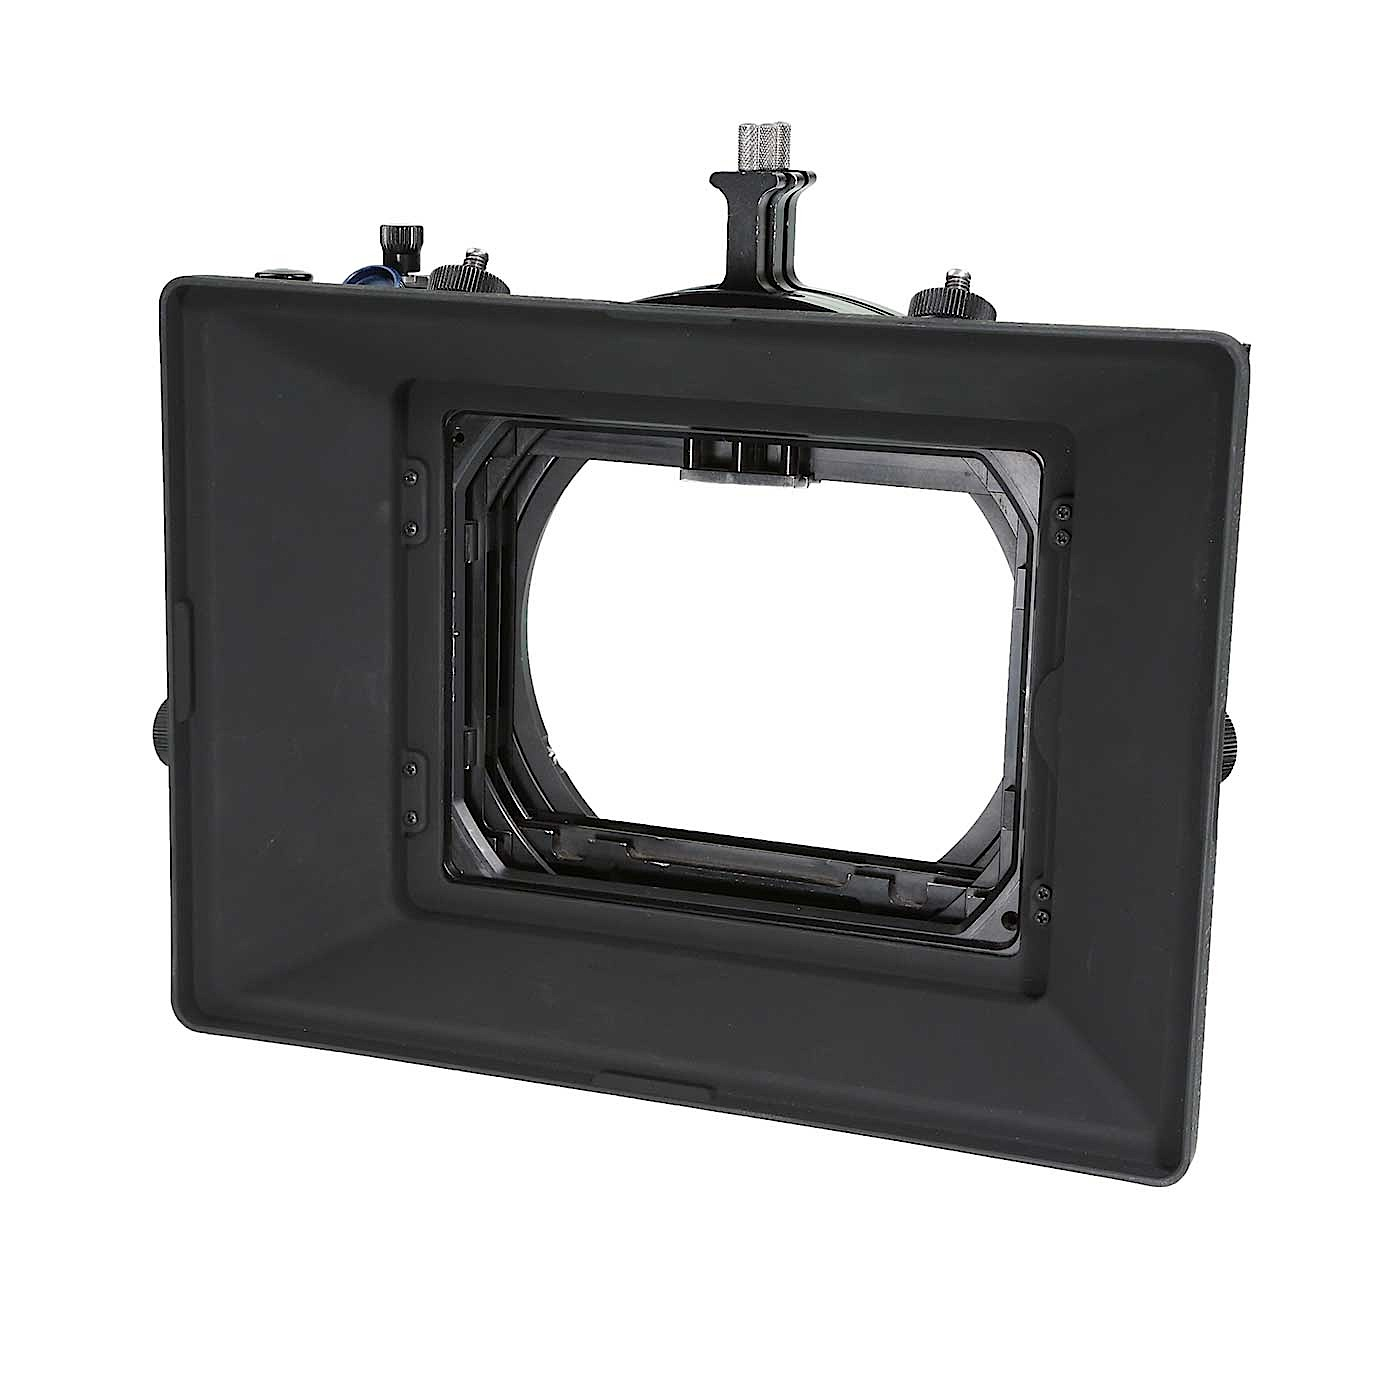 ARRI MB-20 4X5 Studio Mattebox